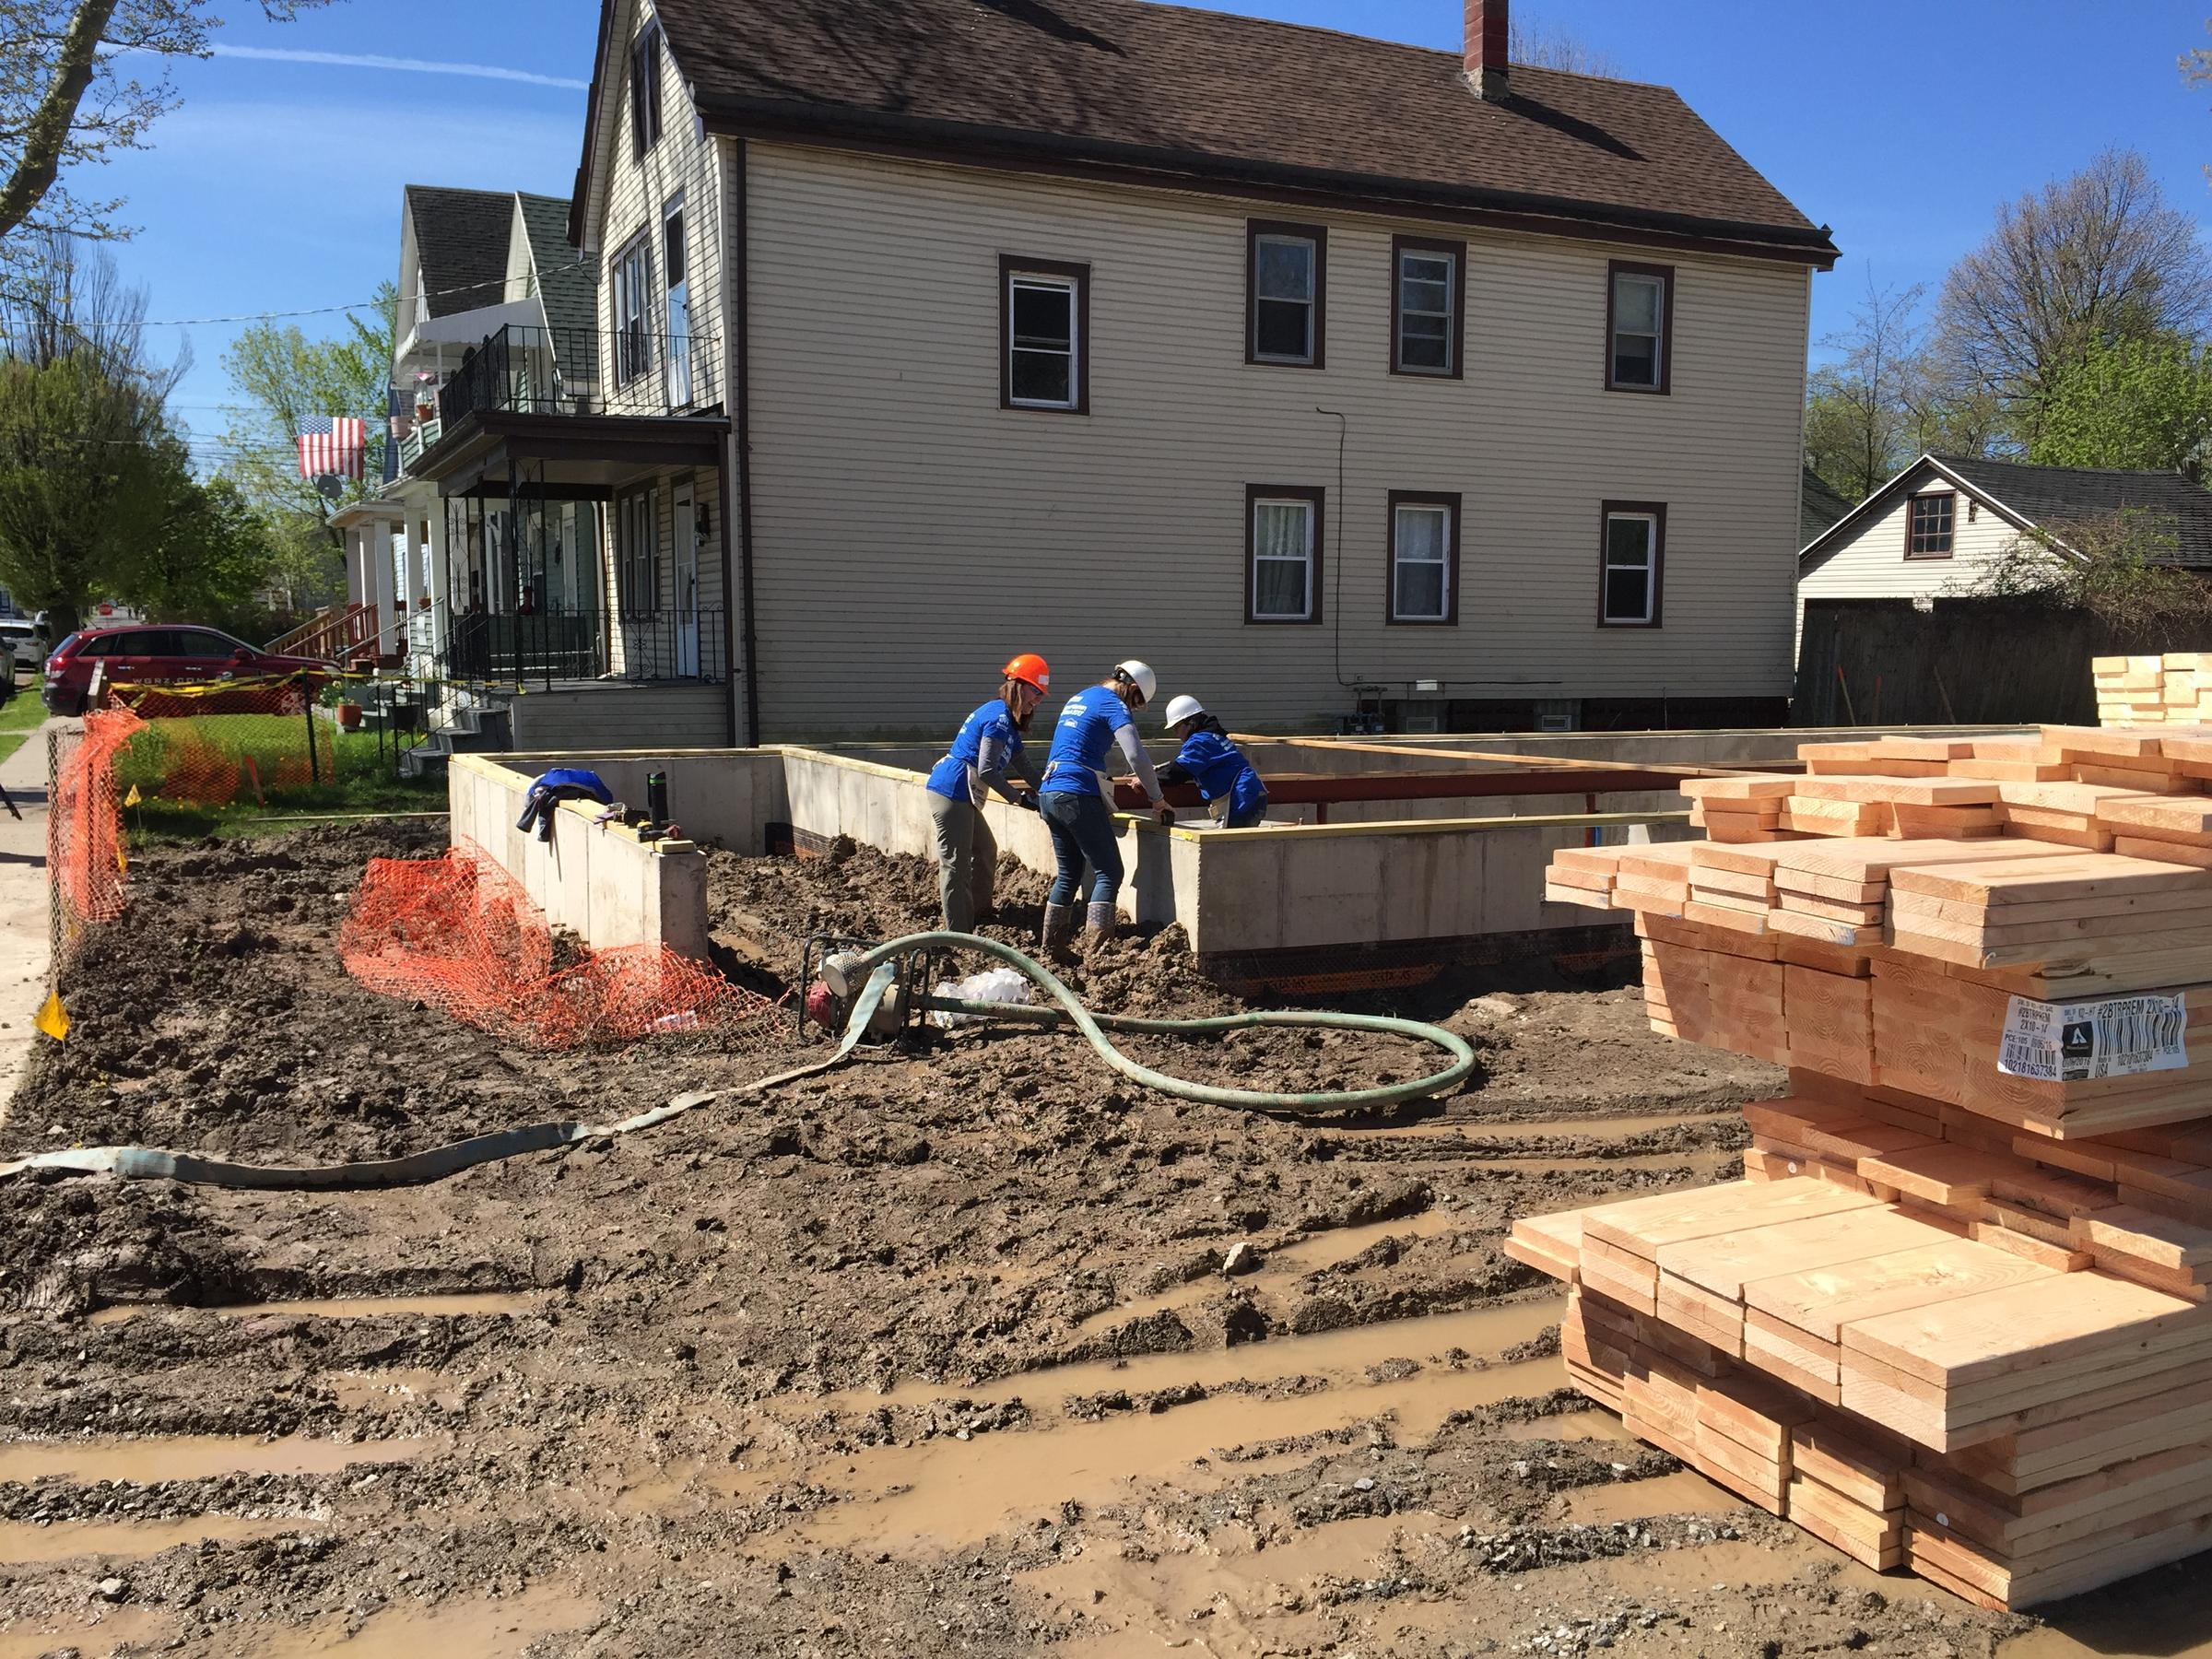 Habitat for Humanity Women Build finishes in record time